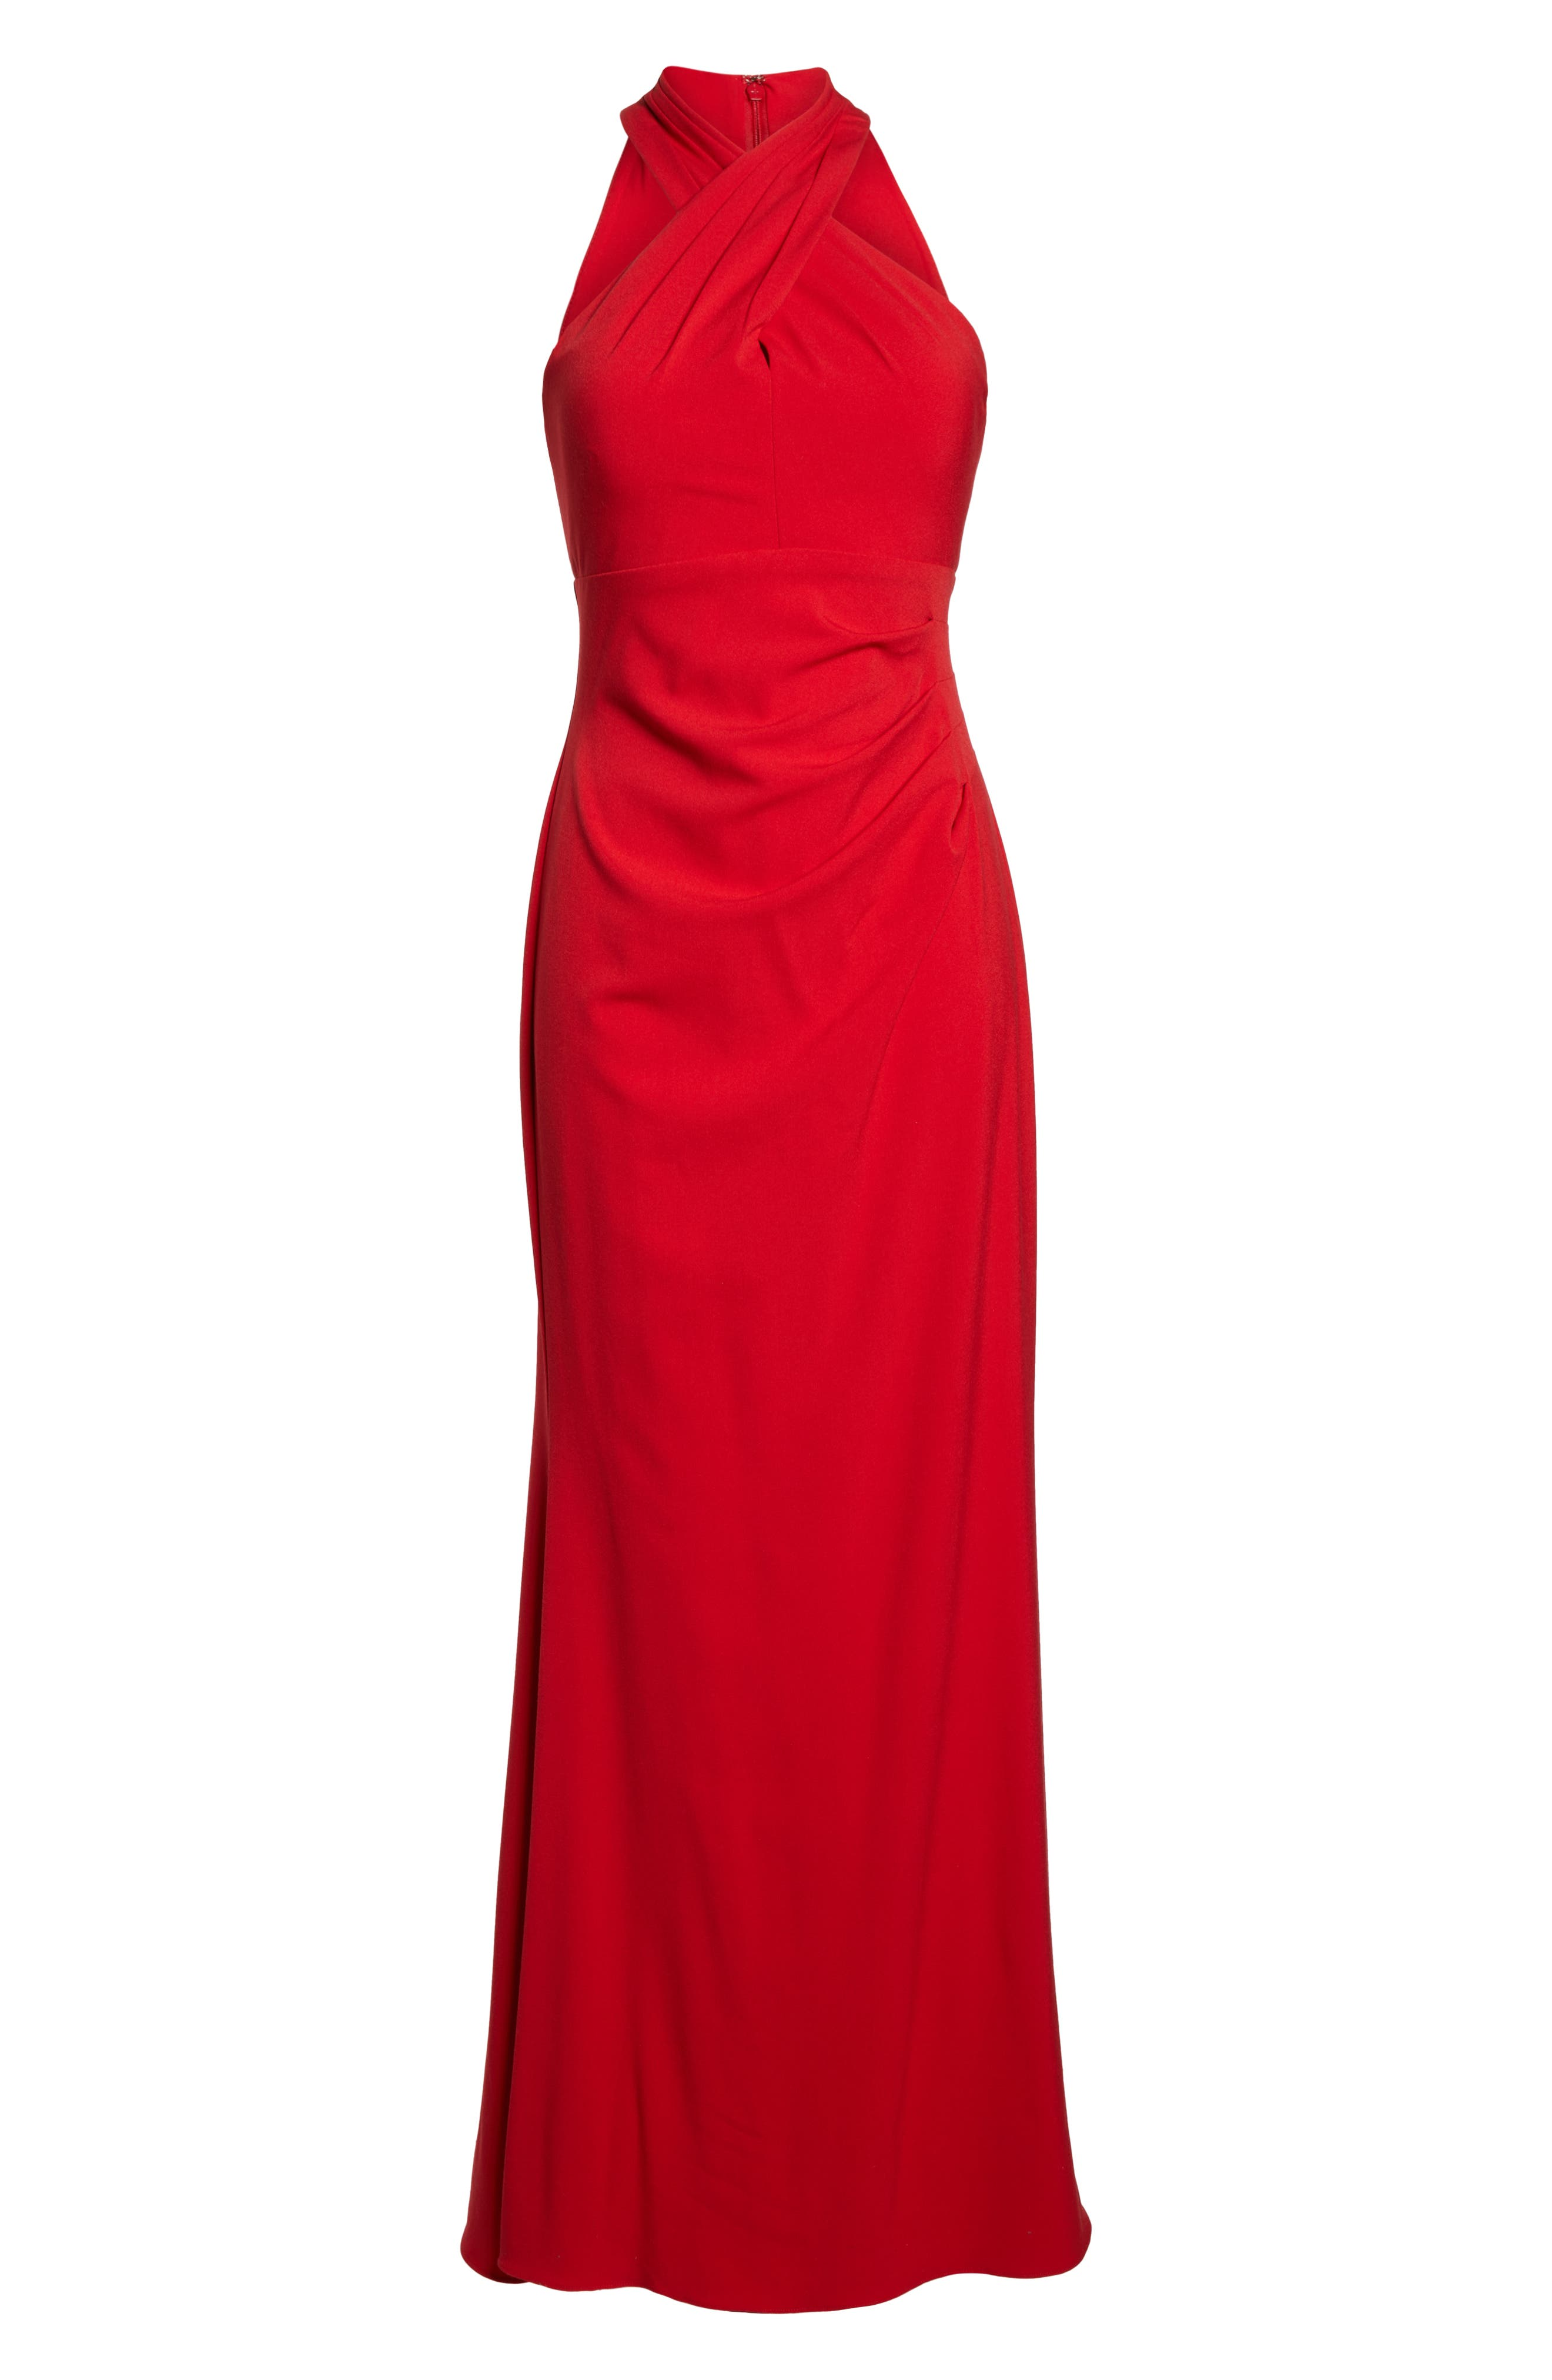 ELIZA J, Side Pleat Crossneck Gown, Alternate thumbnail 7, color, RED